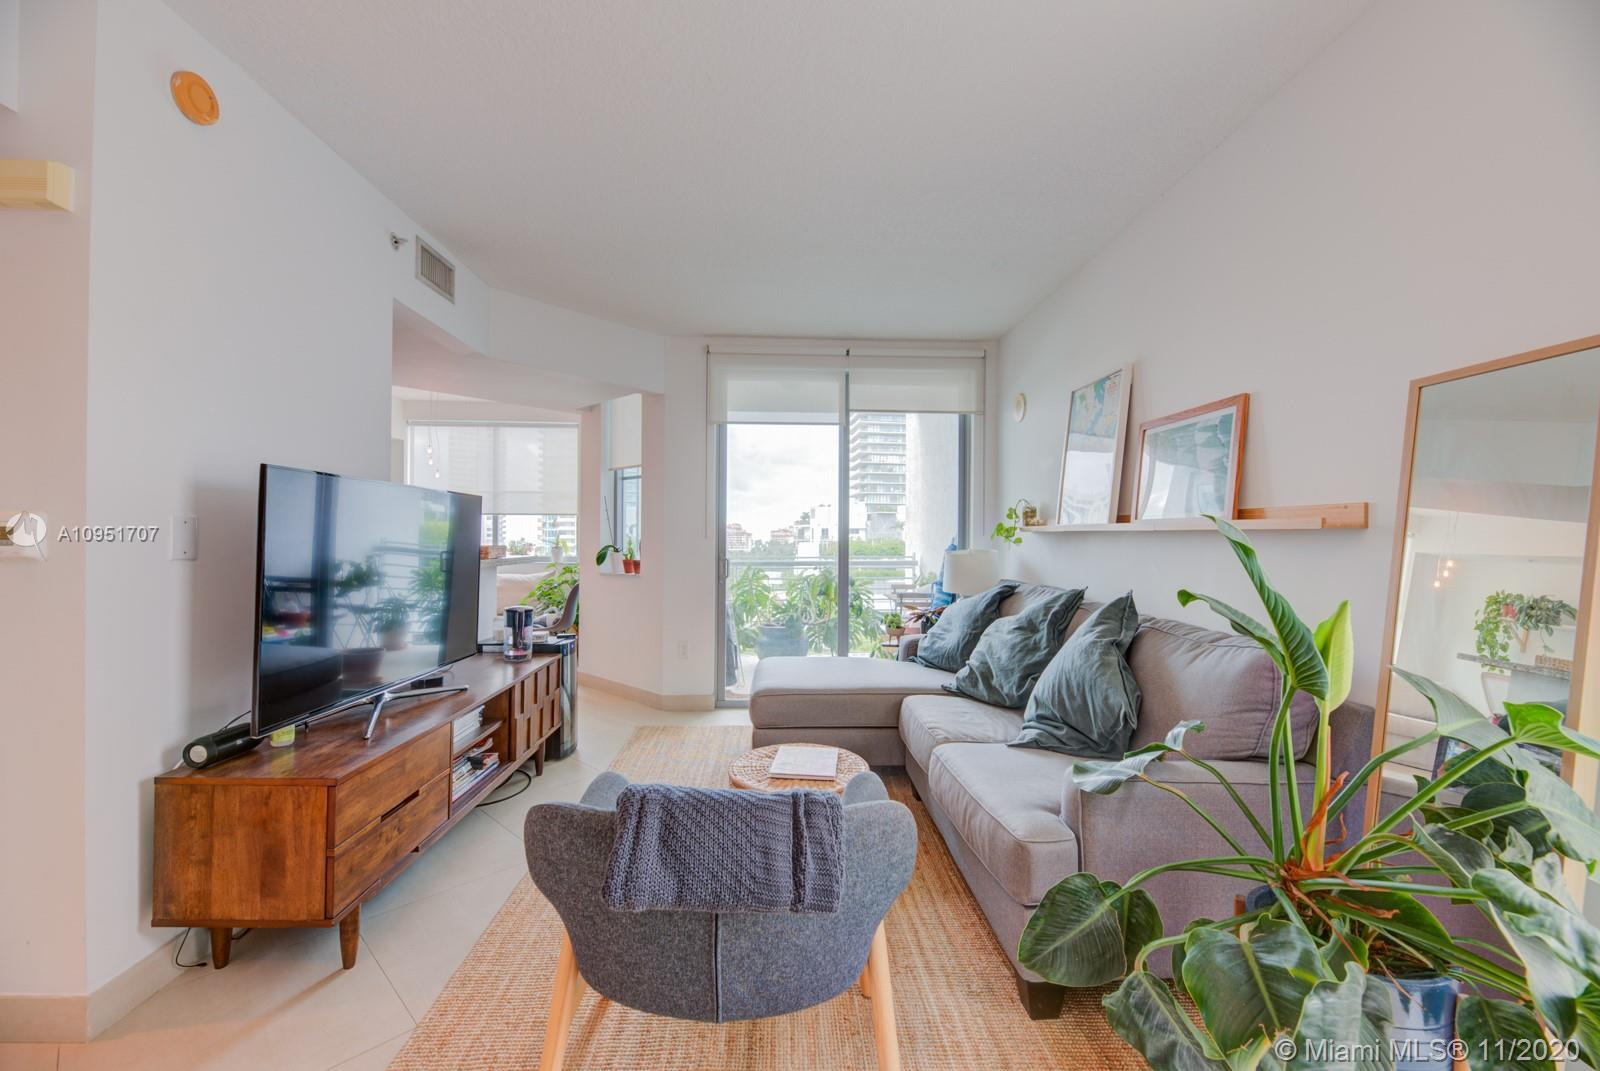 Enjoy the South Beach lifestyle in this 1 bedroom 1.5 bath + Den in the Cosmopolitan. Features a mod